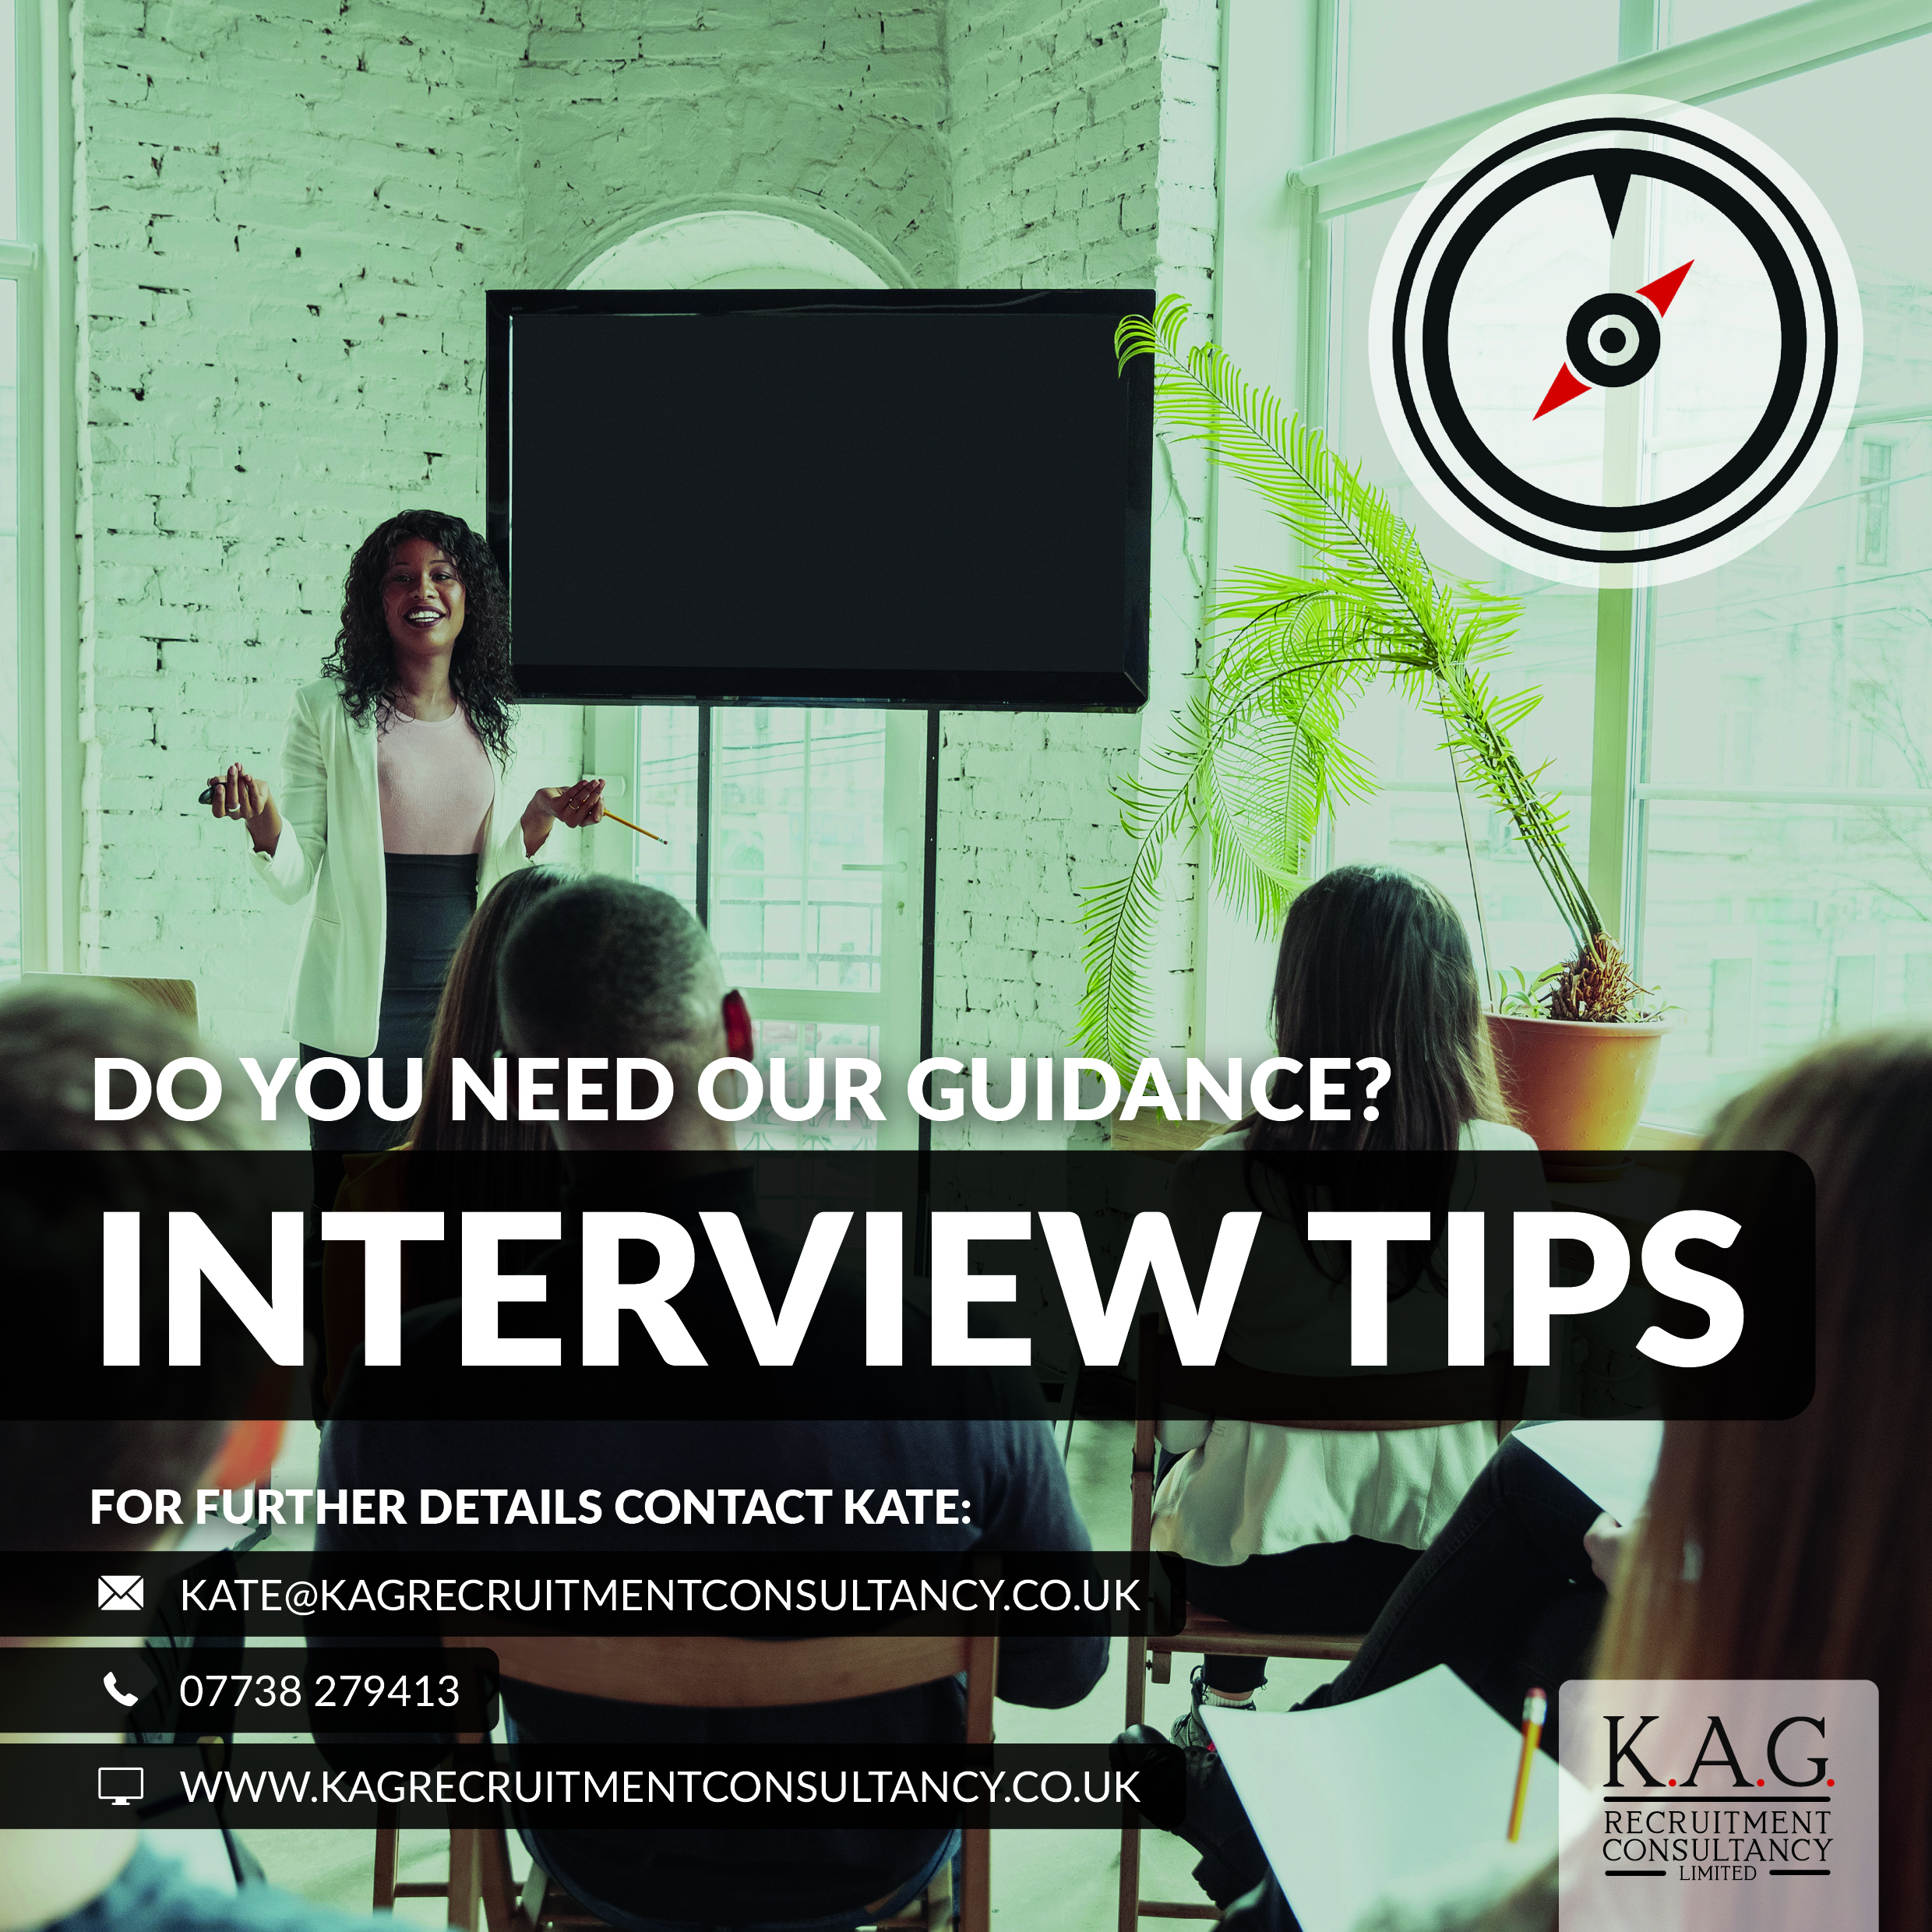 KAG Recruitment Consultancy interview tips